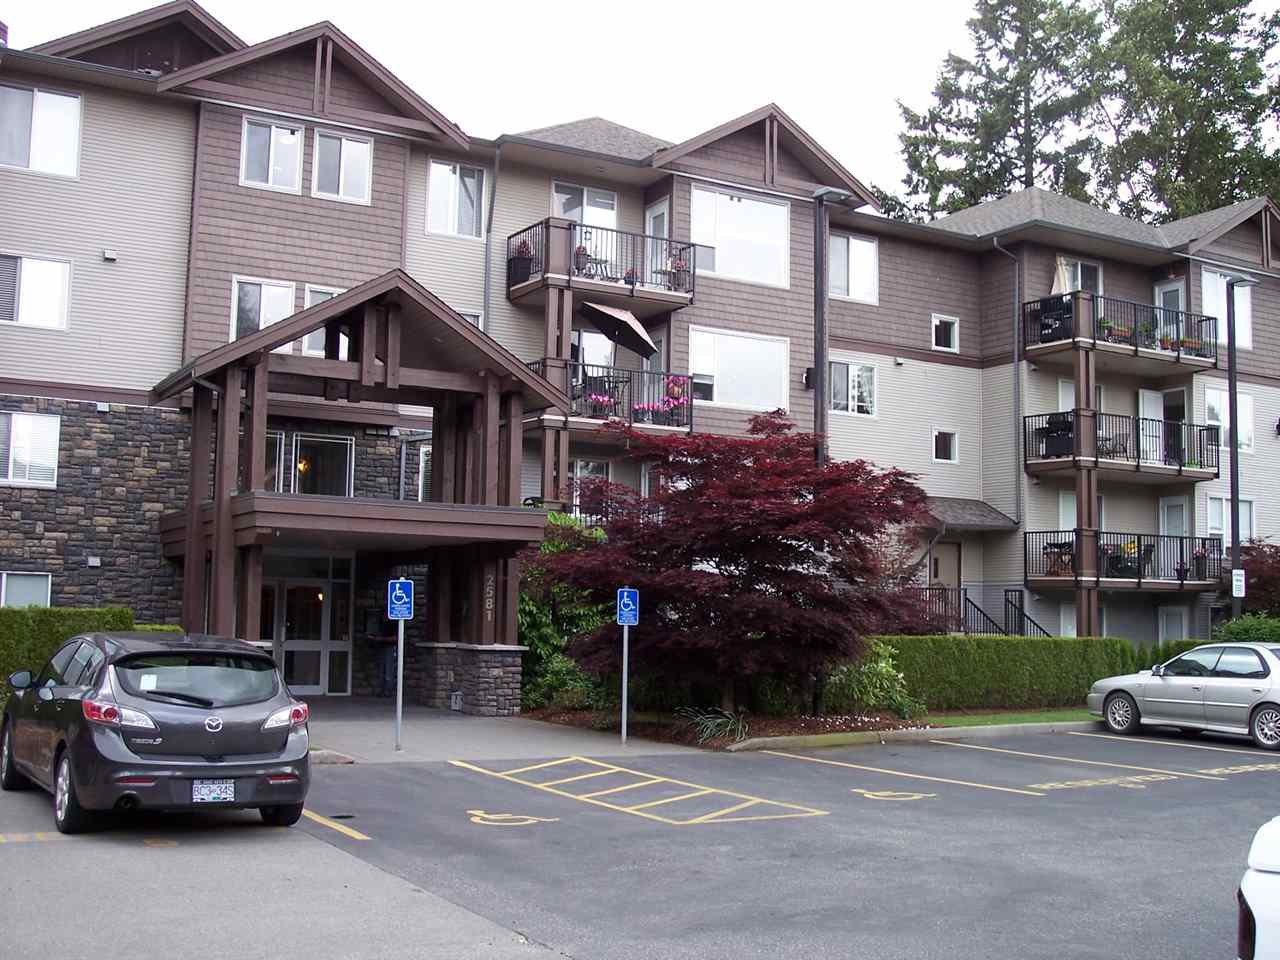 """Main Photo: 407 2581 LANGDON Street in Abbotsford: Abbotsford West Condo for sale in """"COBBLESTONE"""" : MLS®# R2173137"""